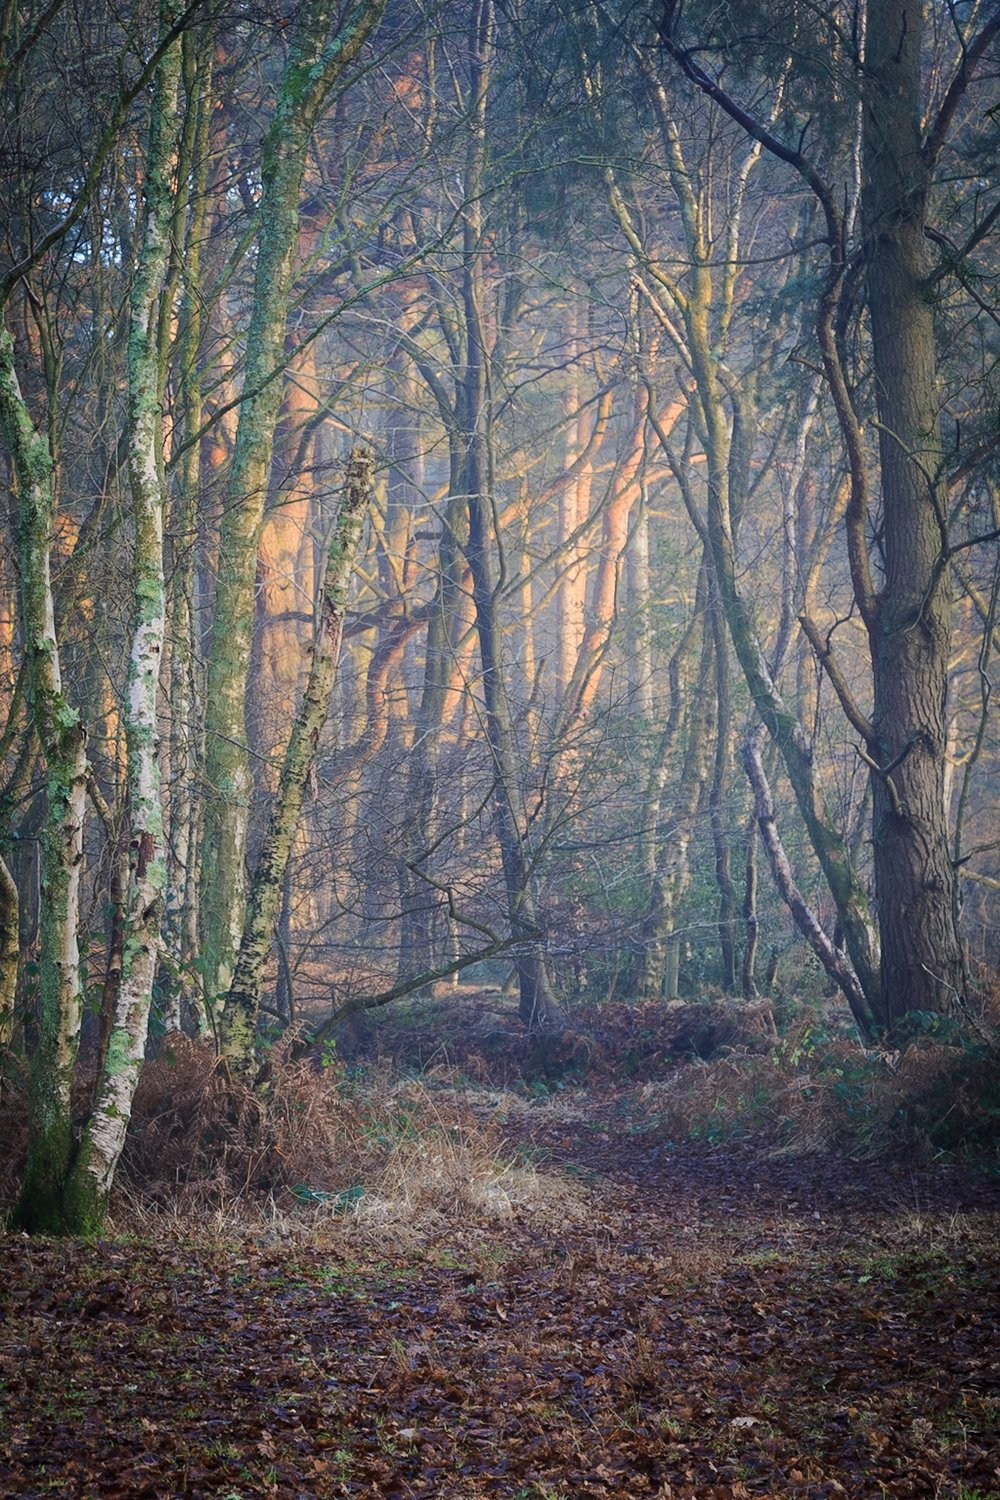 Dramatic moody lighting in the woods - landscape photography in Dorset by Rick McEvoy